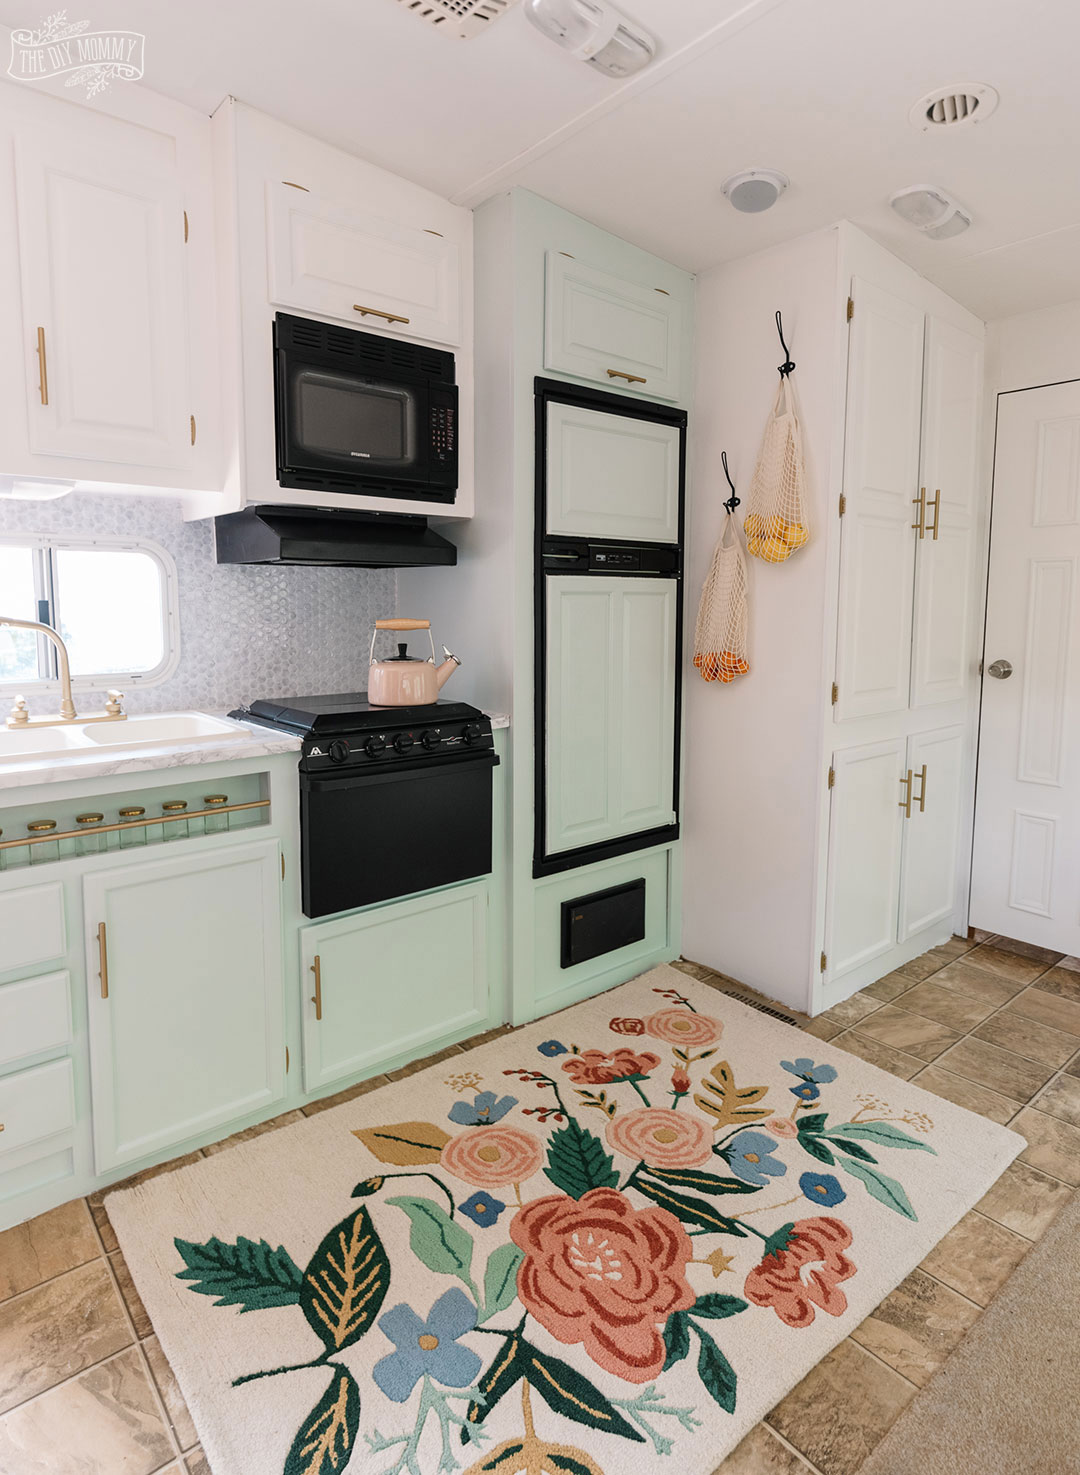 Glam RV Kitchen Makeover with white paint, mint green paint, and metallic gold accents